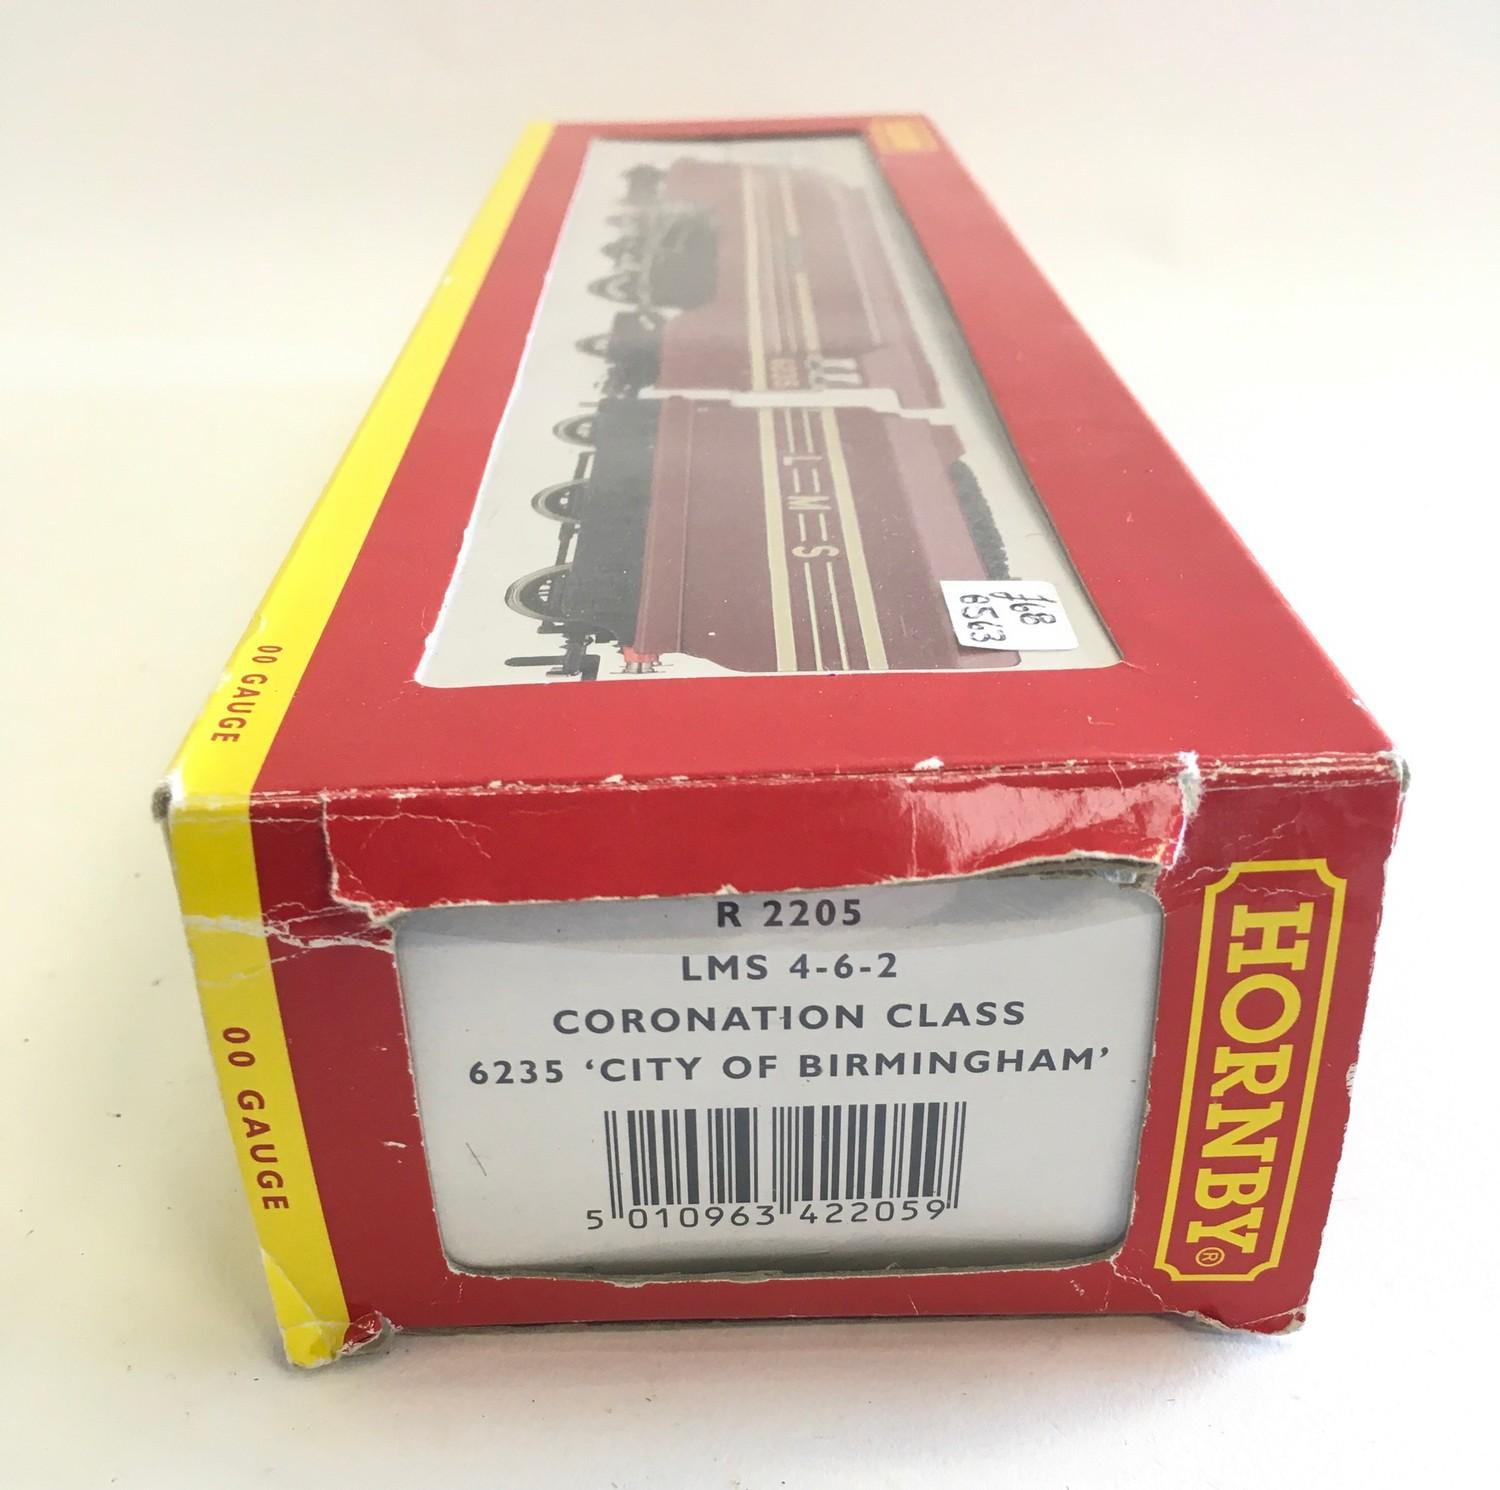 Hornby R2205 LMS 4-6-2 Coronation Class 6235 ?City of Birmingham?. Appears Excellent in Good box. - Image 2 of 3